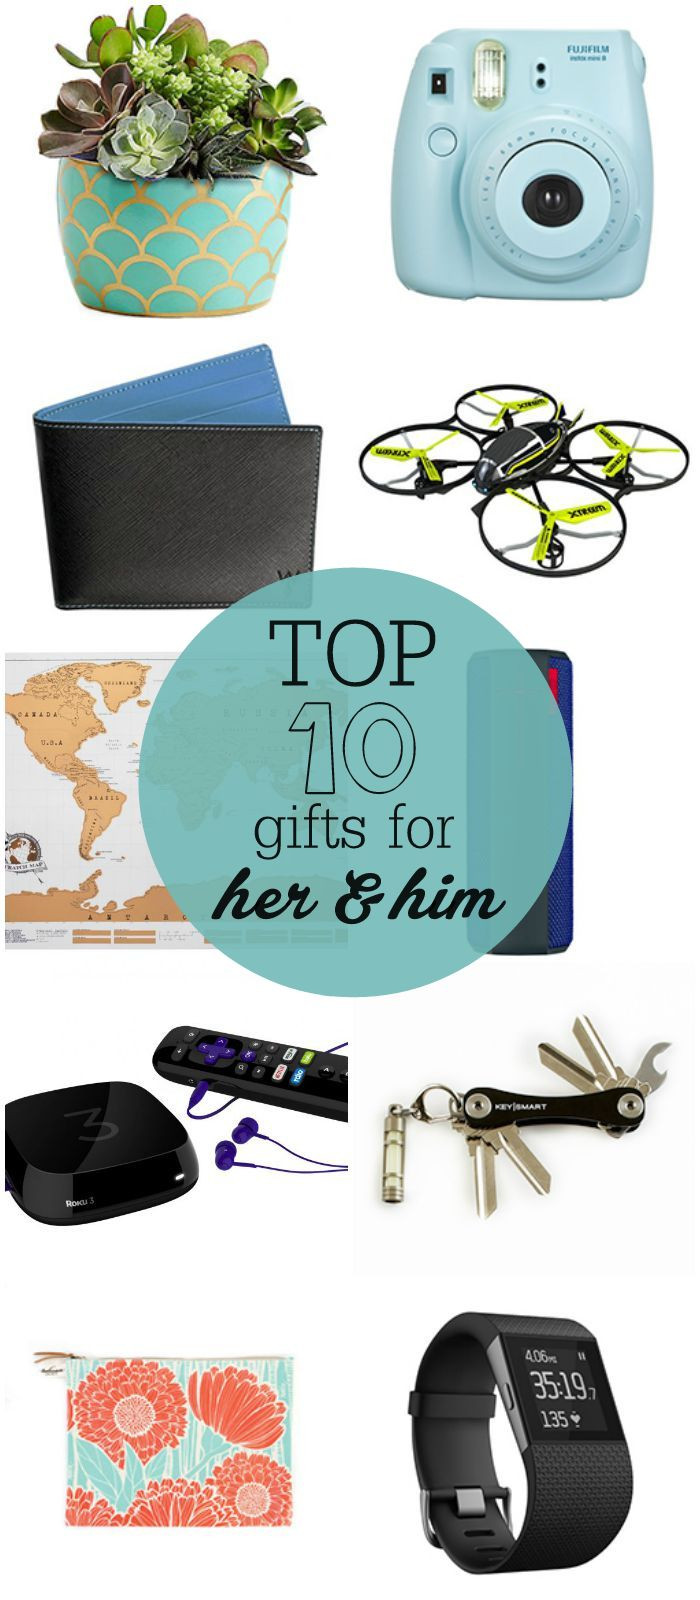 Top Birthday Gifts For Her  Top 10 Gifts for Her and Him